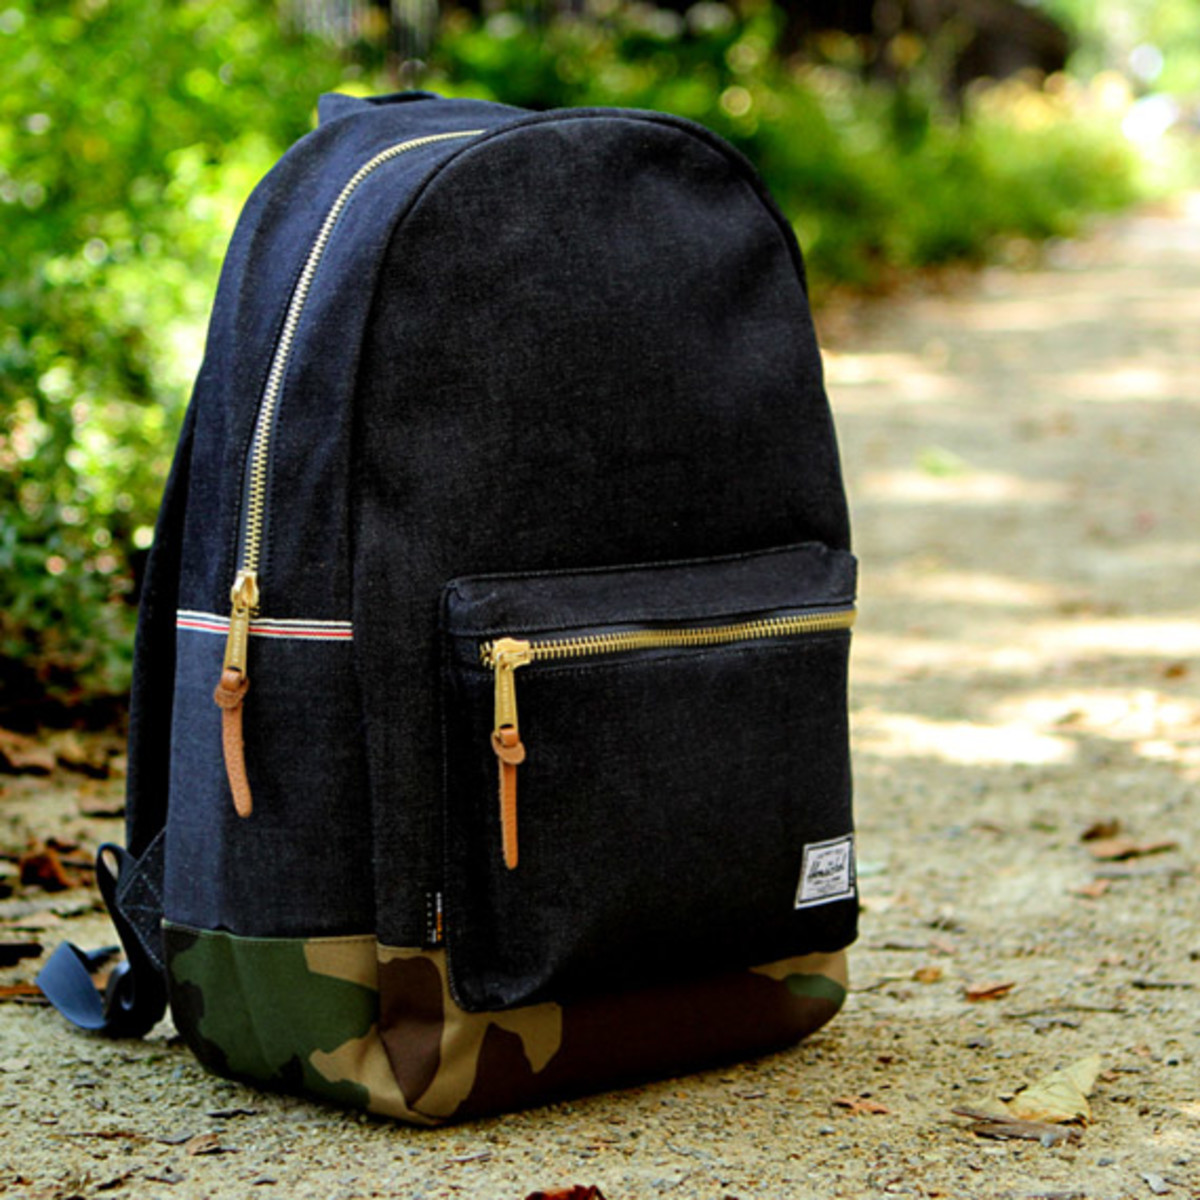 kith-ronnie-fieg-herschel-supply-co-denim-backpack-02